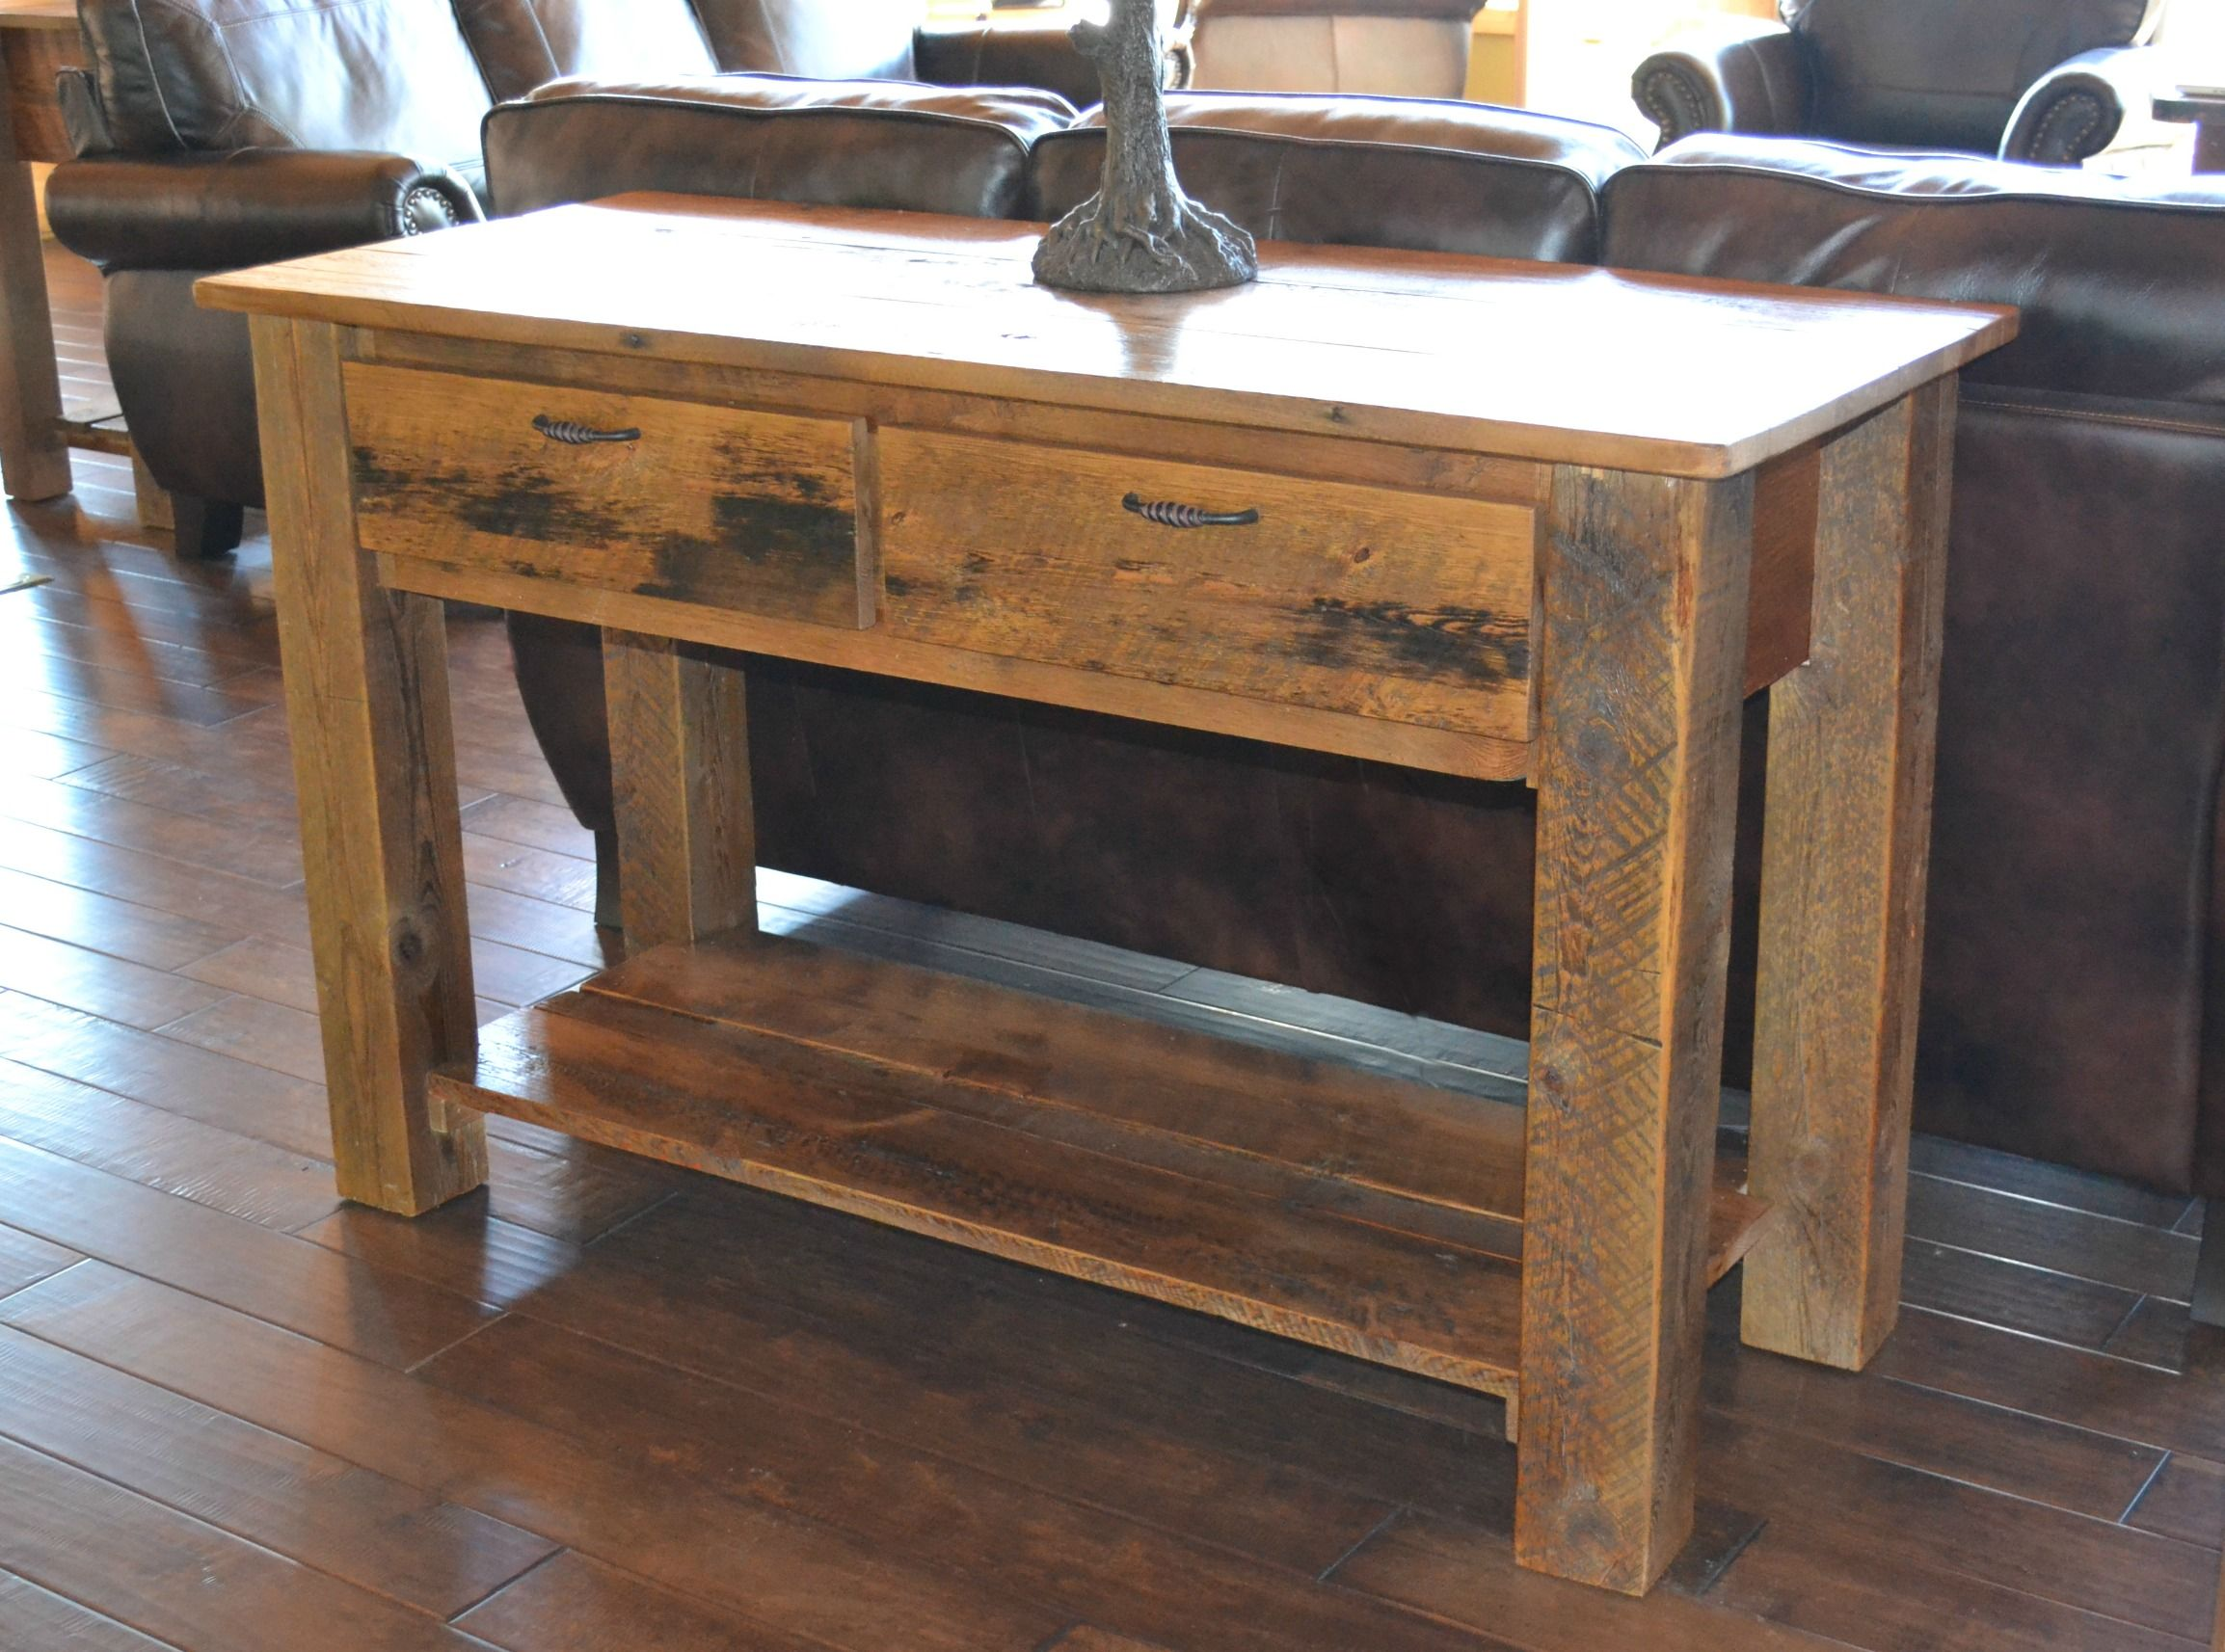 reclaimed barn wood furniture rustic barnwood accent table mall timber creek dale tiffany lamp patio las vegas inch tall nightstands curved umbrella entry decor ideas small